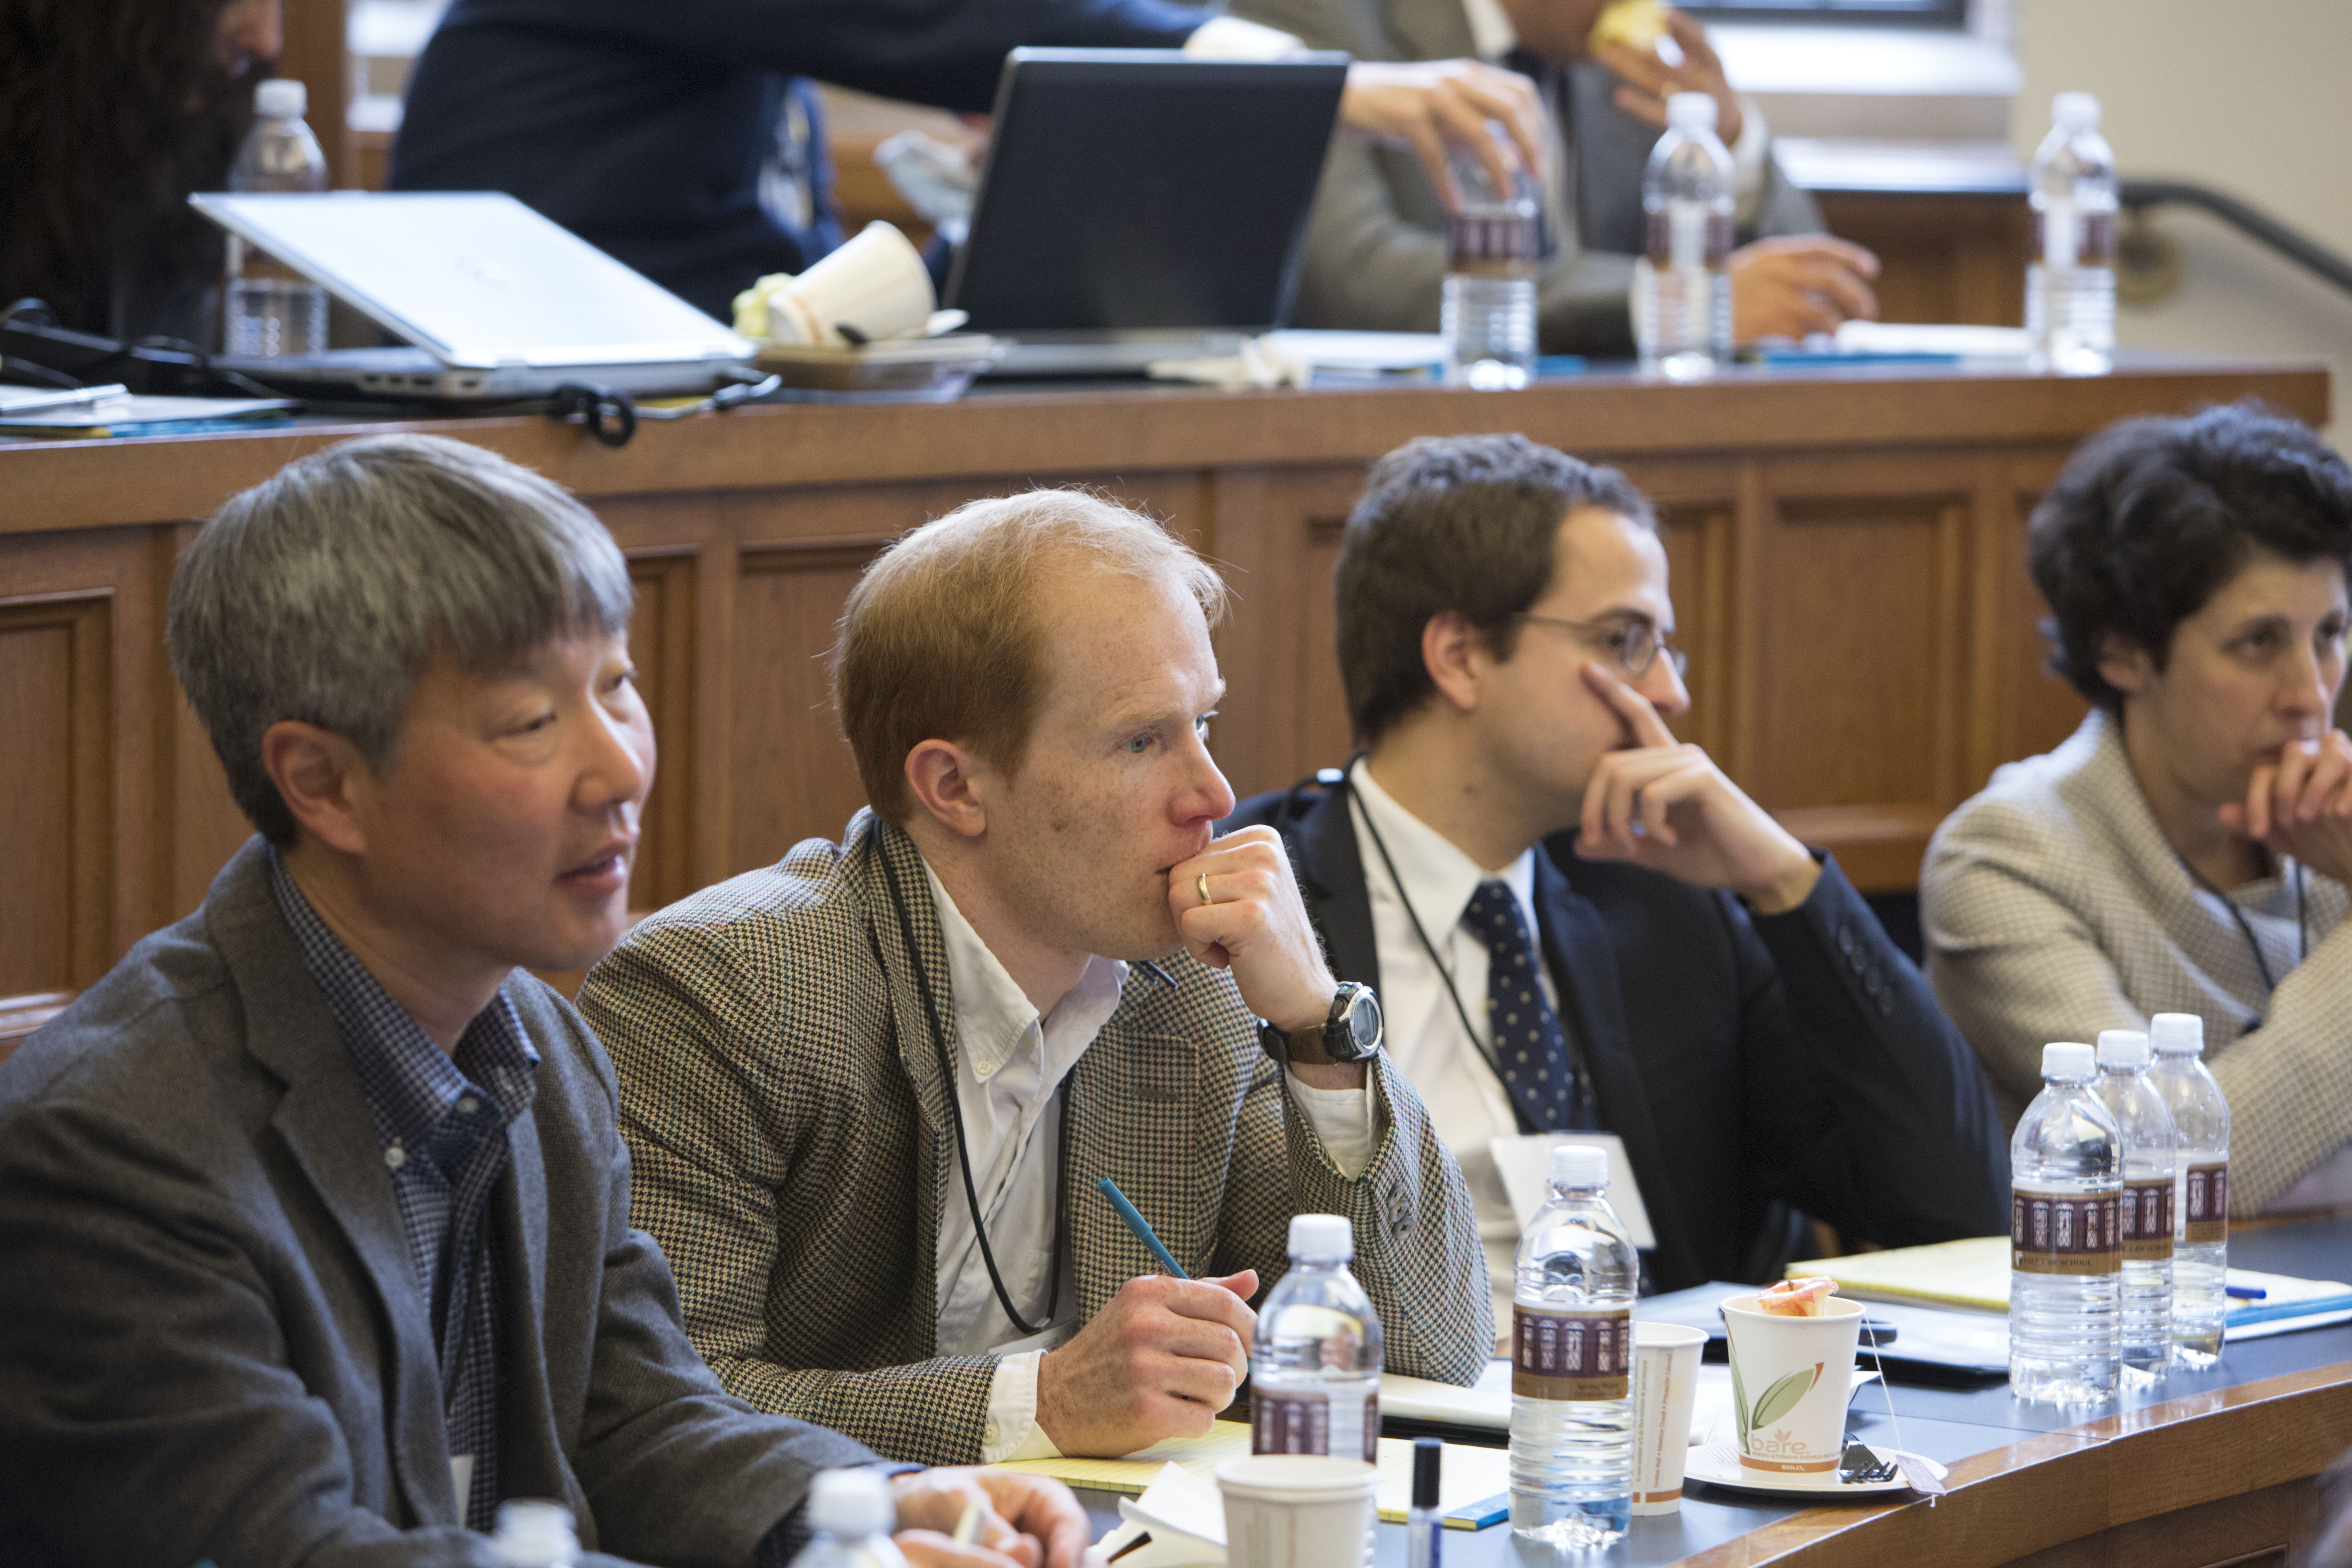 George Mason Law Prof. Bruce Kobayashi, Texas Law Prof. Abraham Wickelgren, Florian Grisel LLM '10, and Anne Marie Whitesell